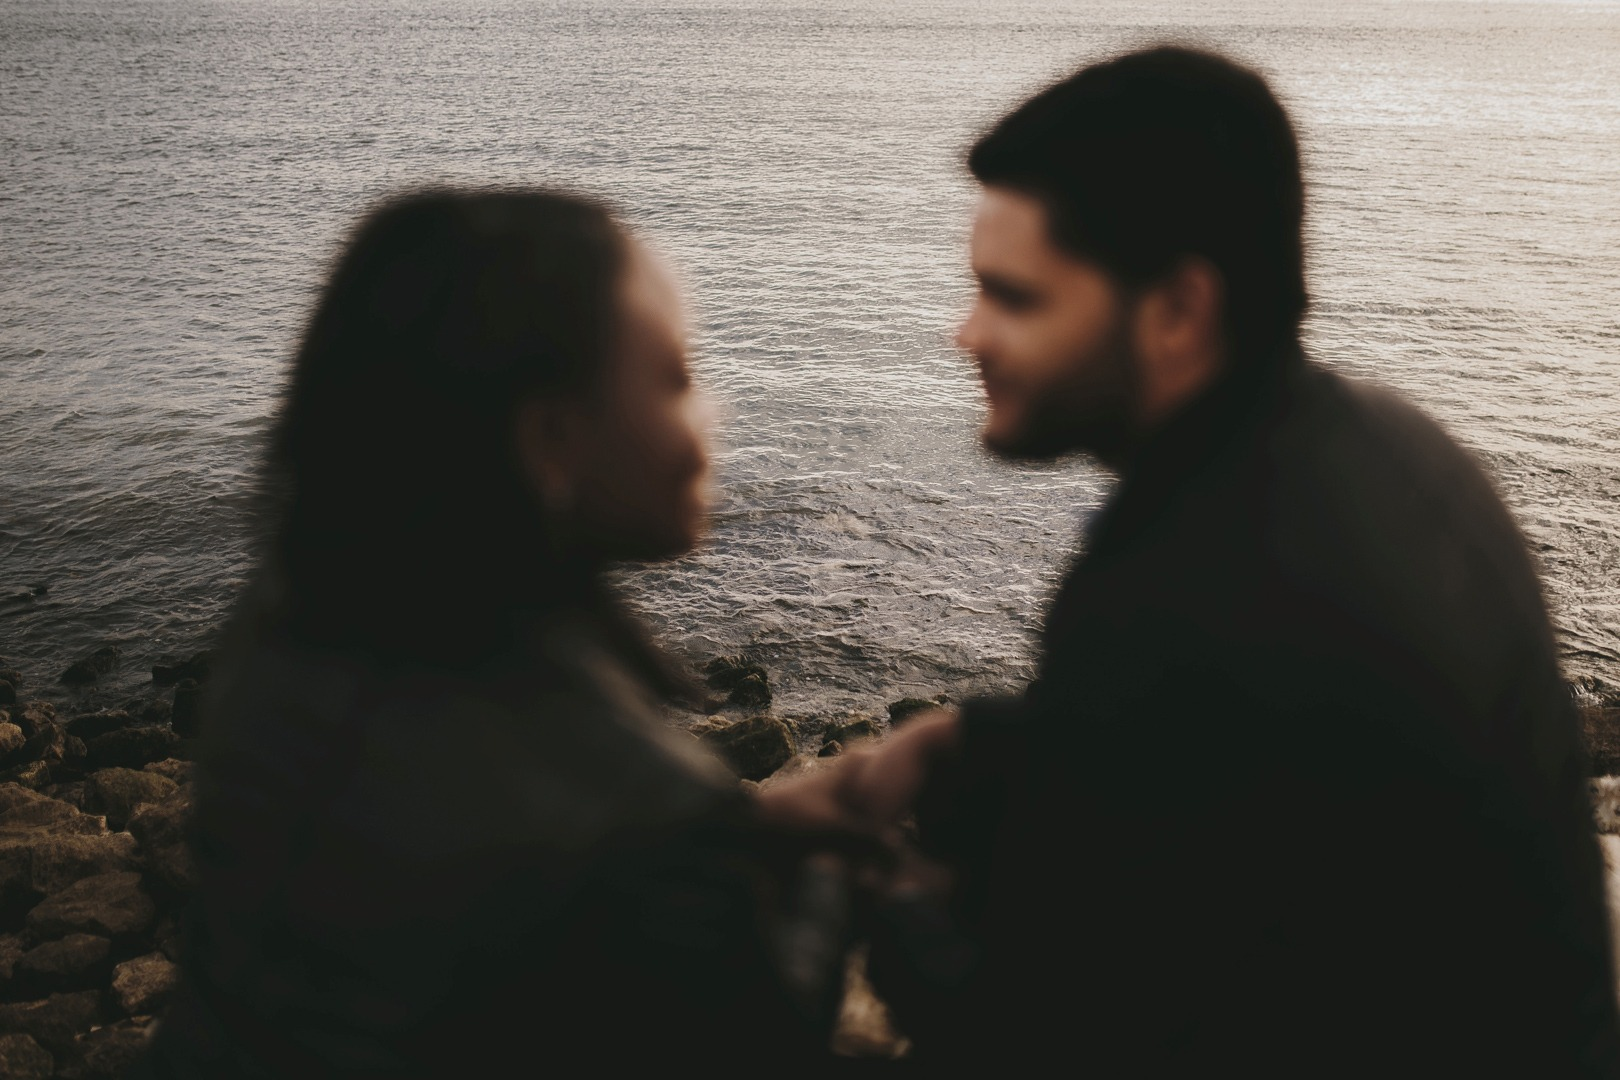 engagement photo shoot in Portugal